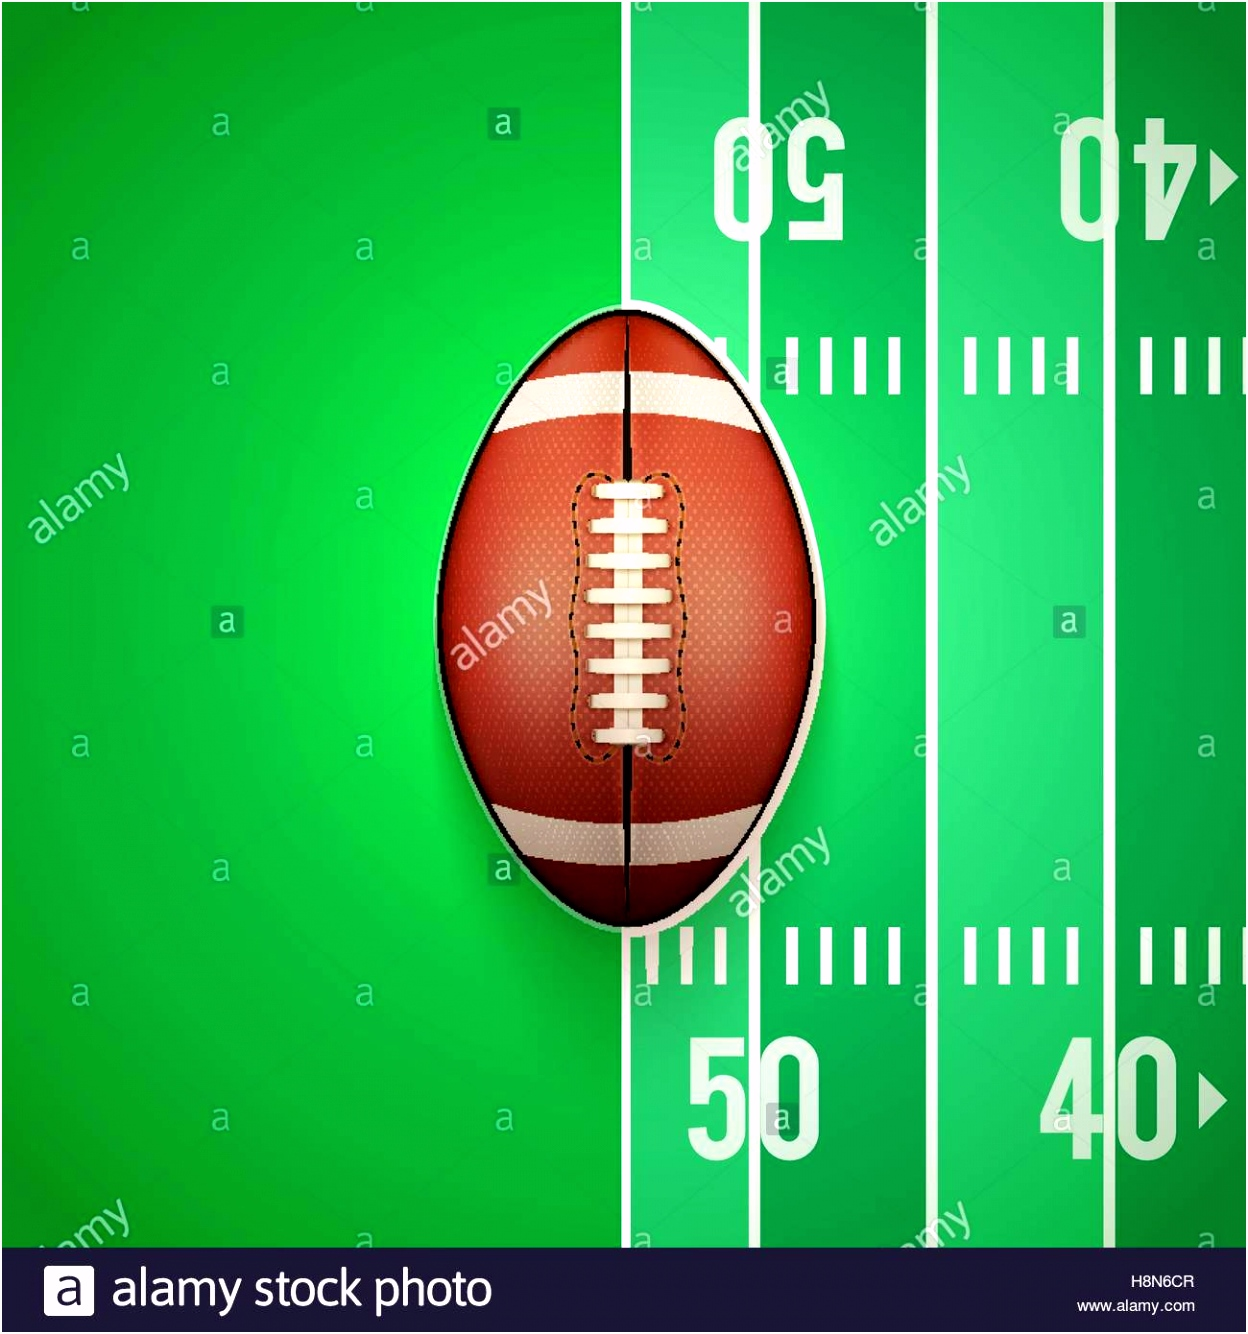 American Football Poster Helmet Ball Stockfotos & American Football